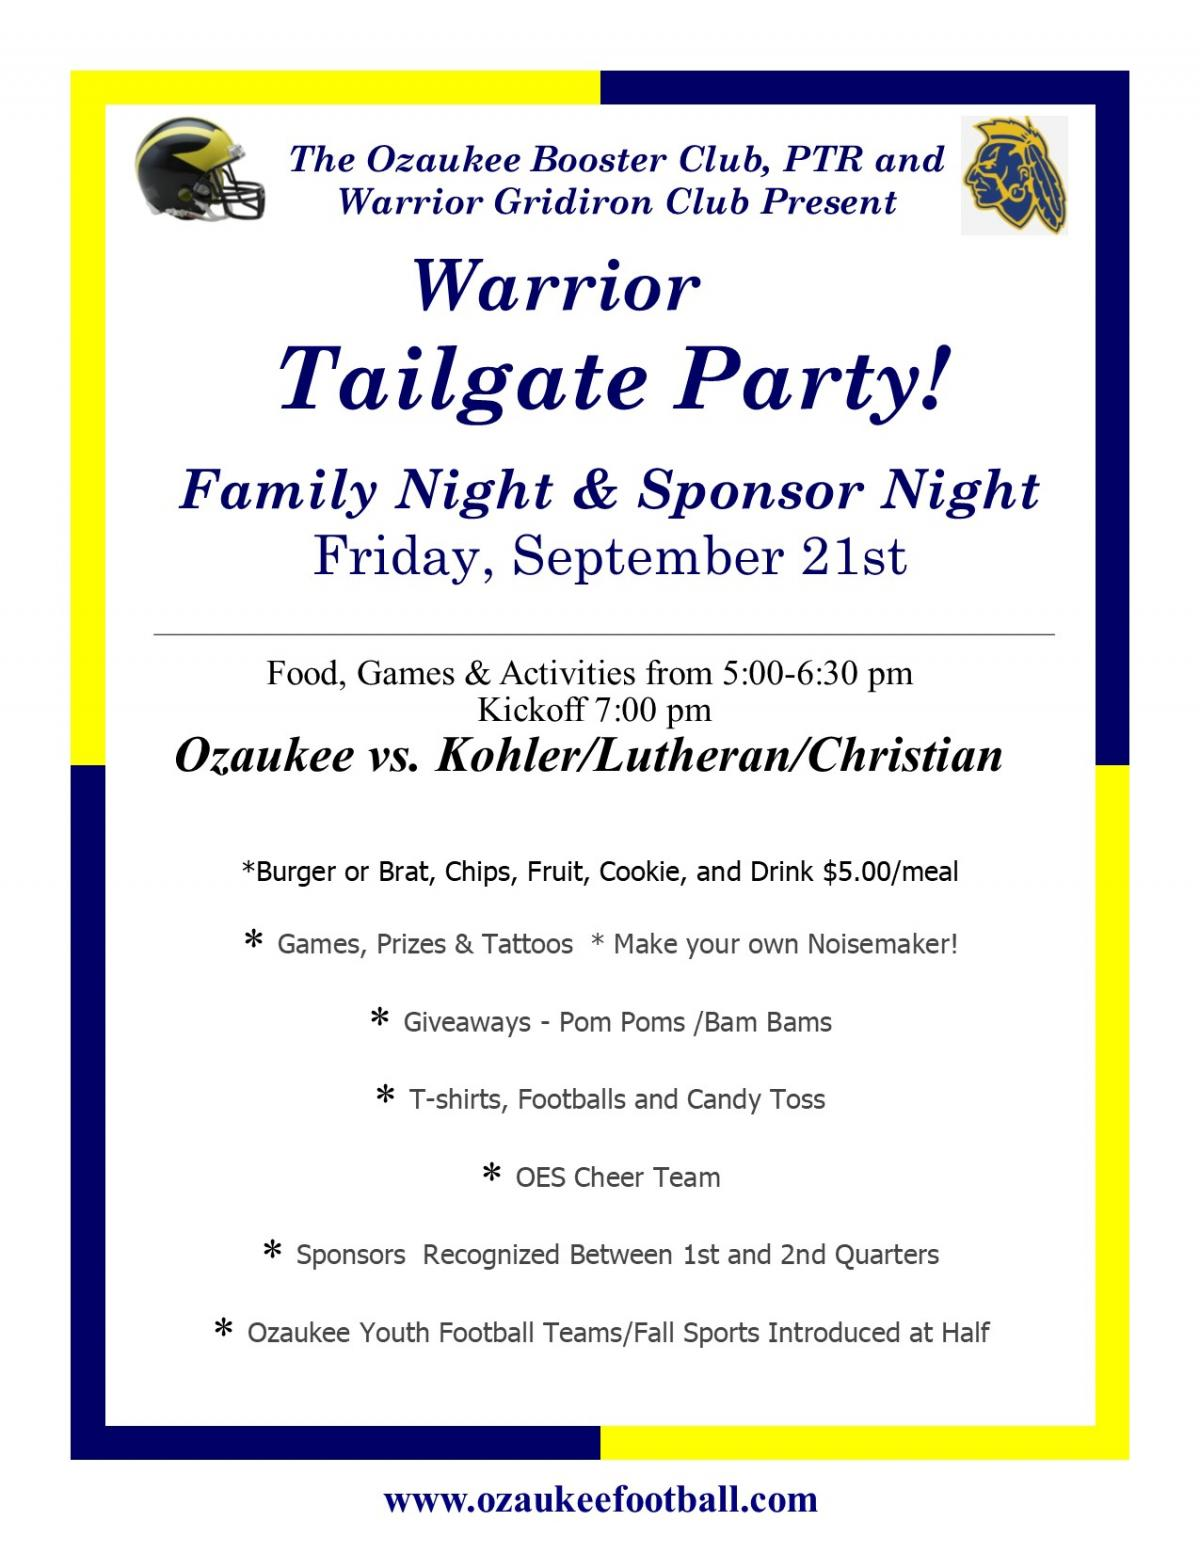 September 21 - Annual Tailgate Party!